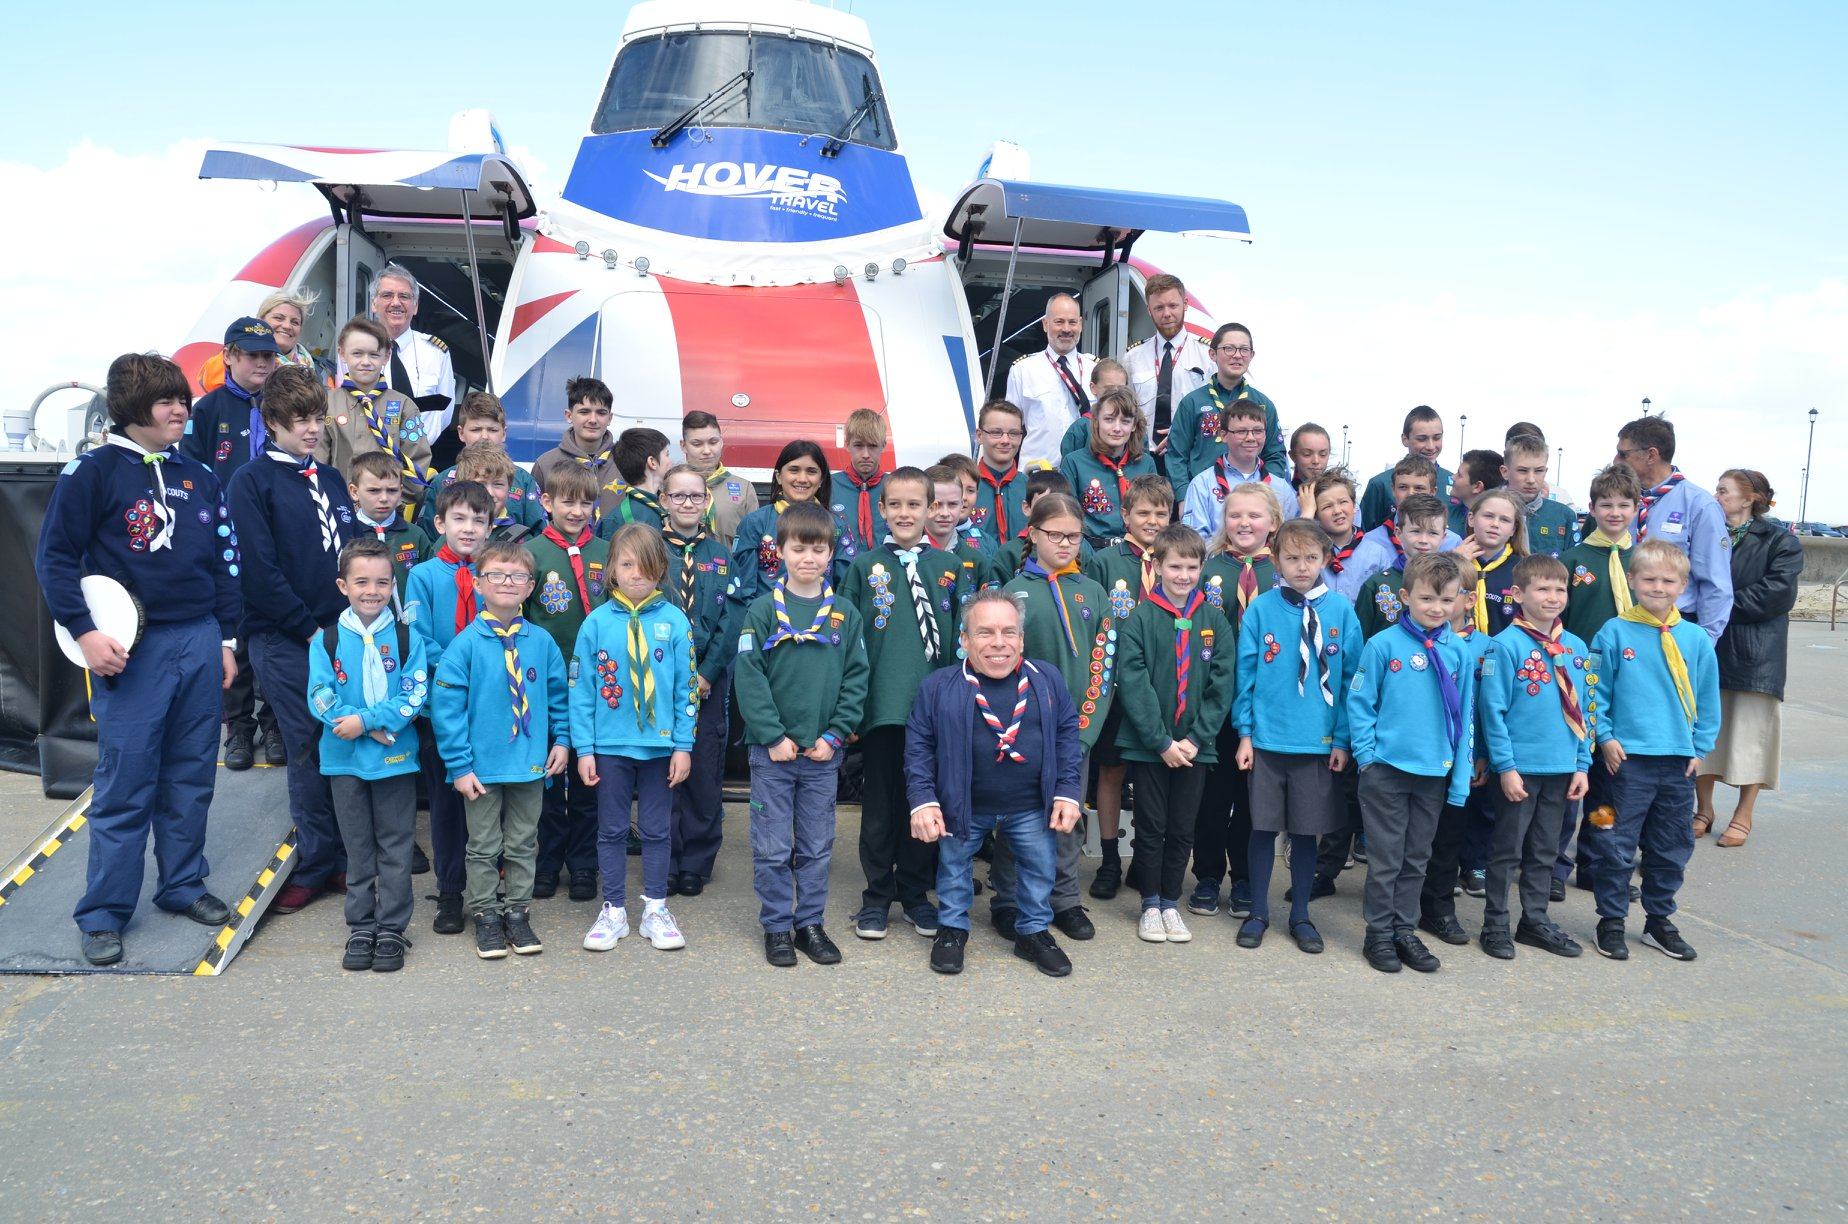 Warwick Davis poses for a photo with Scouts on the Isle of Wight.